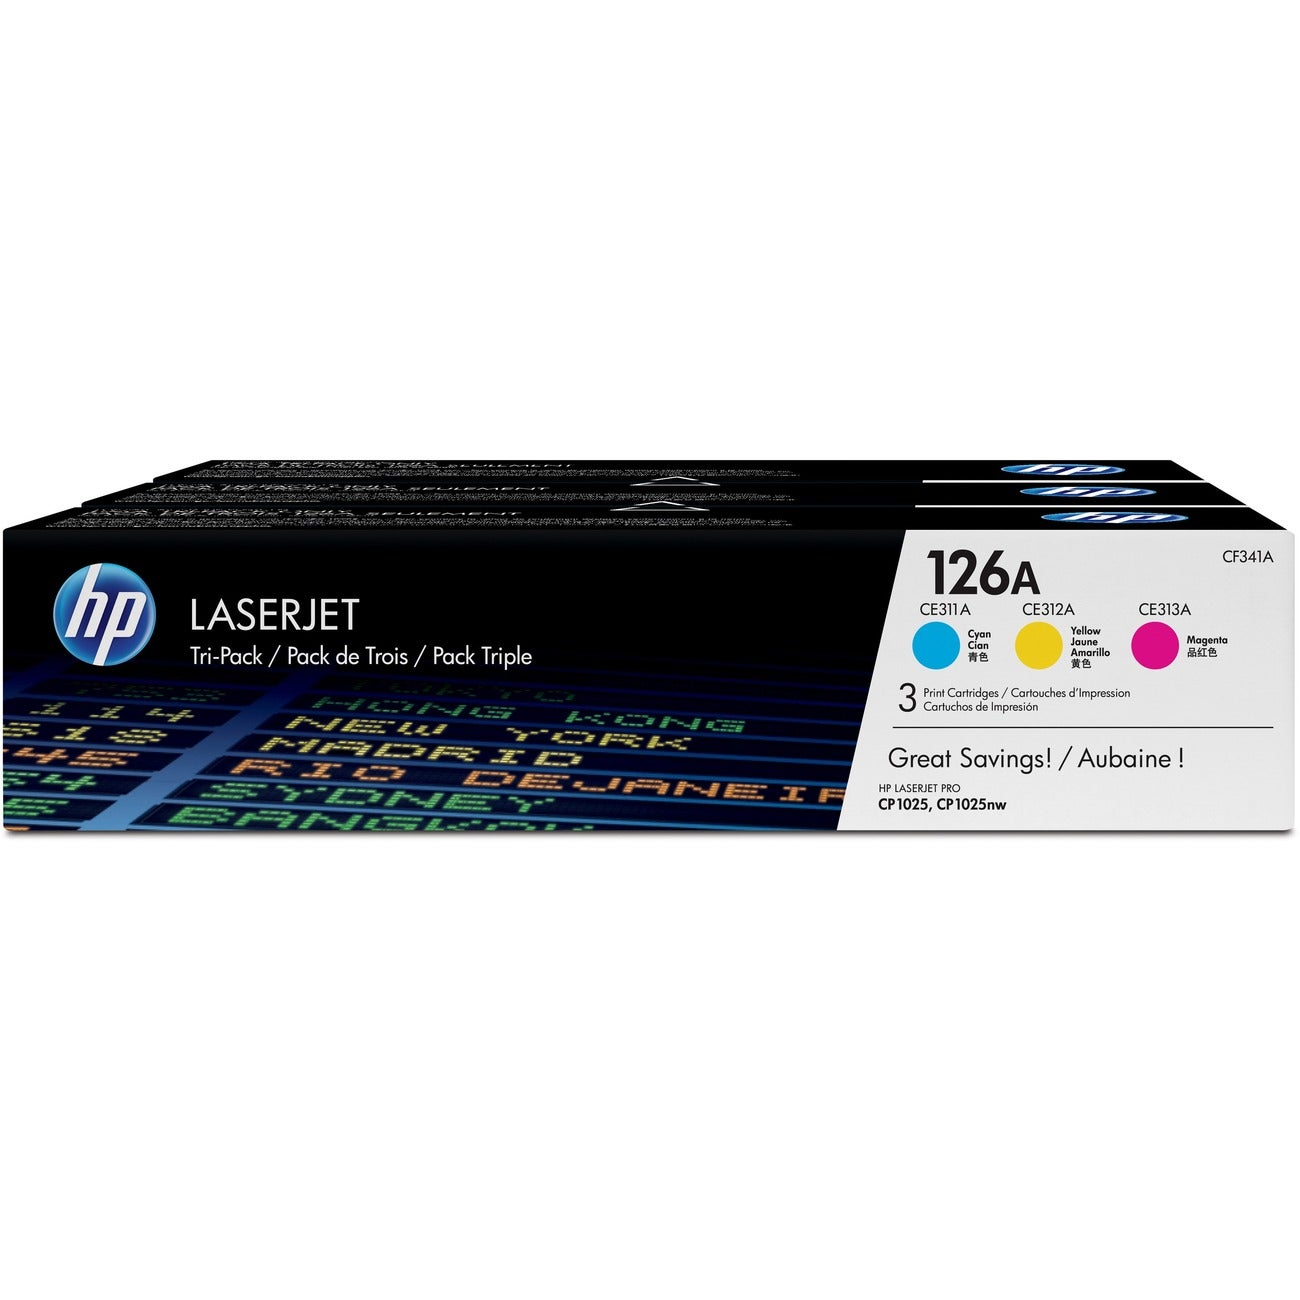 HP 126A Toner Cartridge - Cyan, Magenta, Yellow